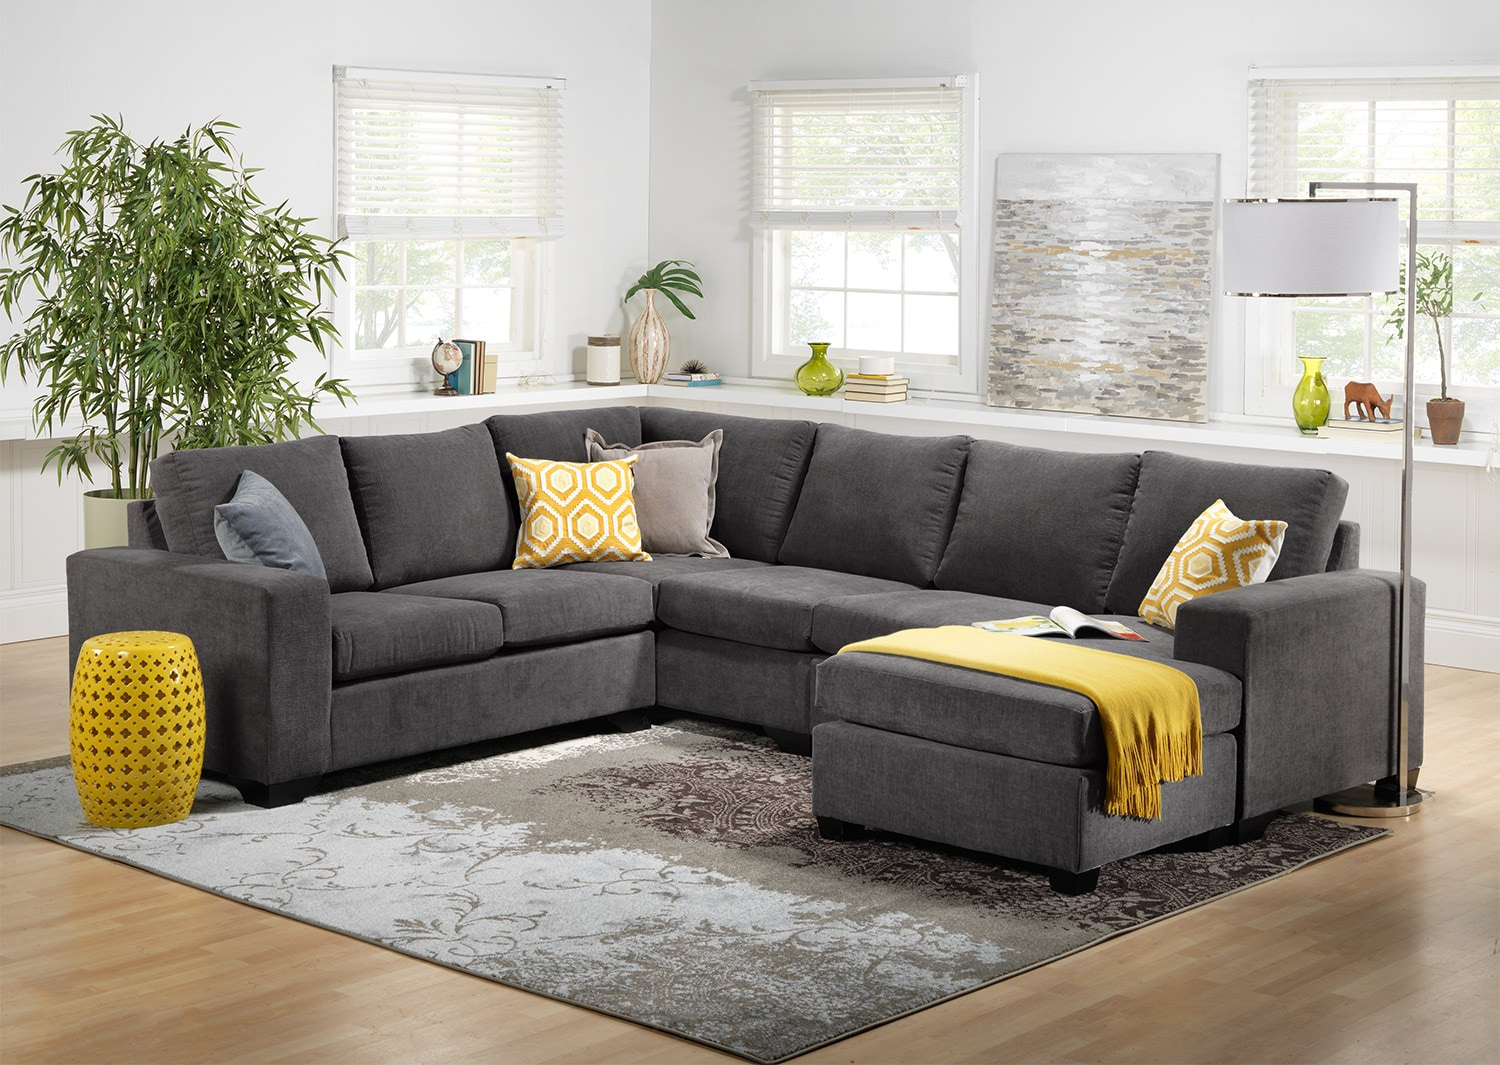 Danielle 3 Piece Sectional with Right Facing Corner Wedge  : 431131 from www.leons.ca size 1500 x 1065 jpeg 446kB